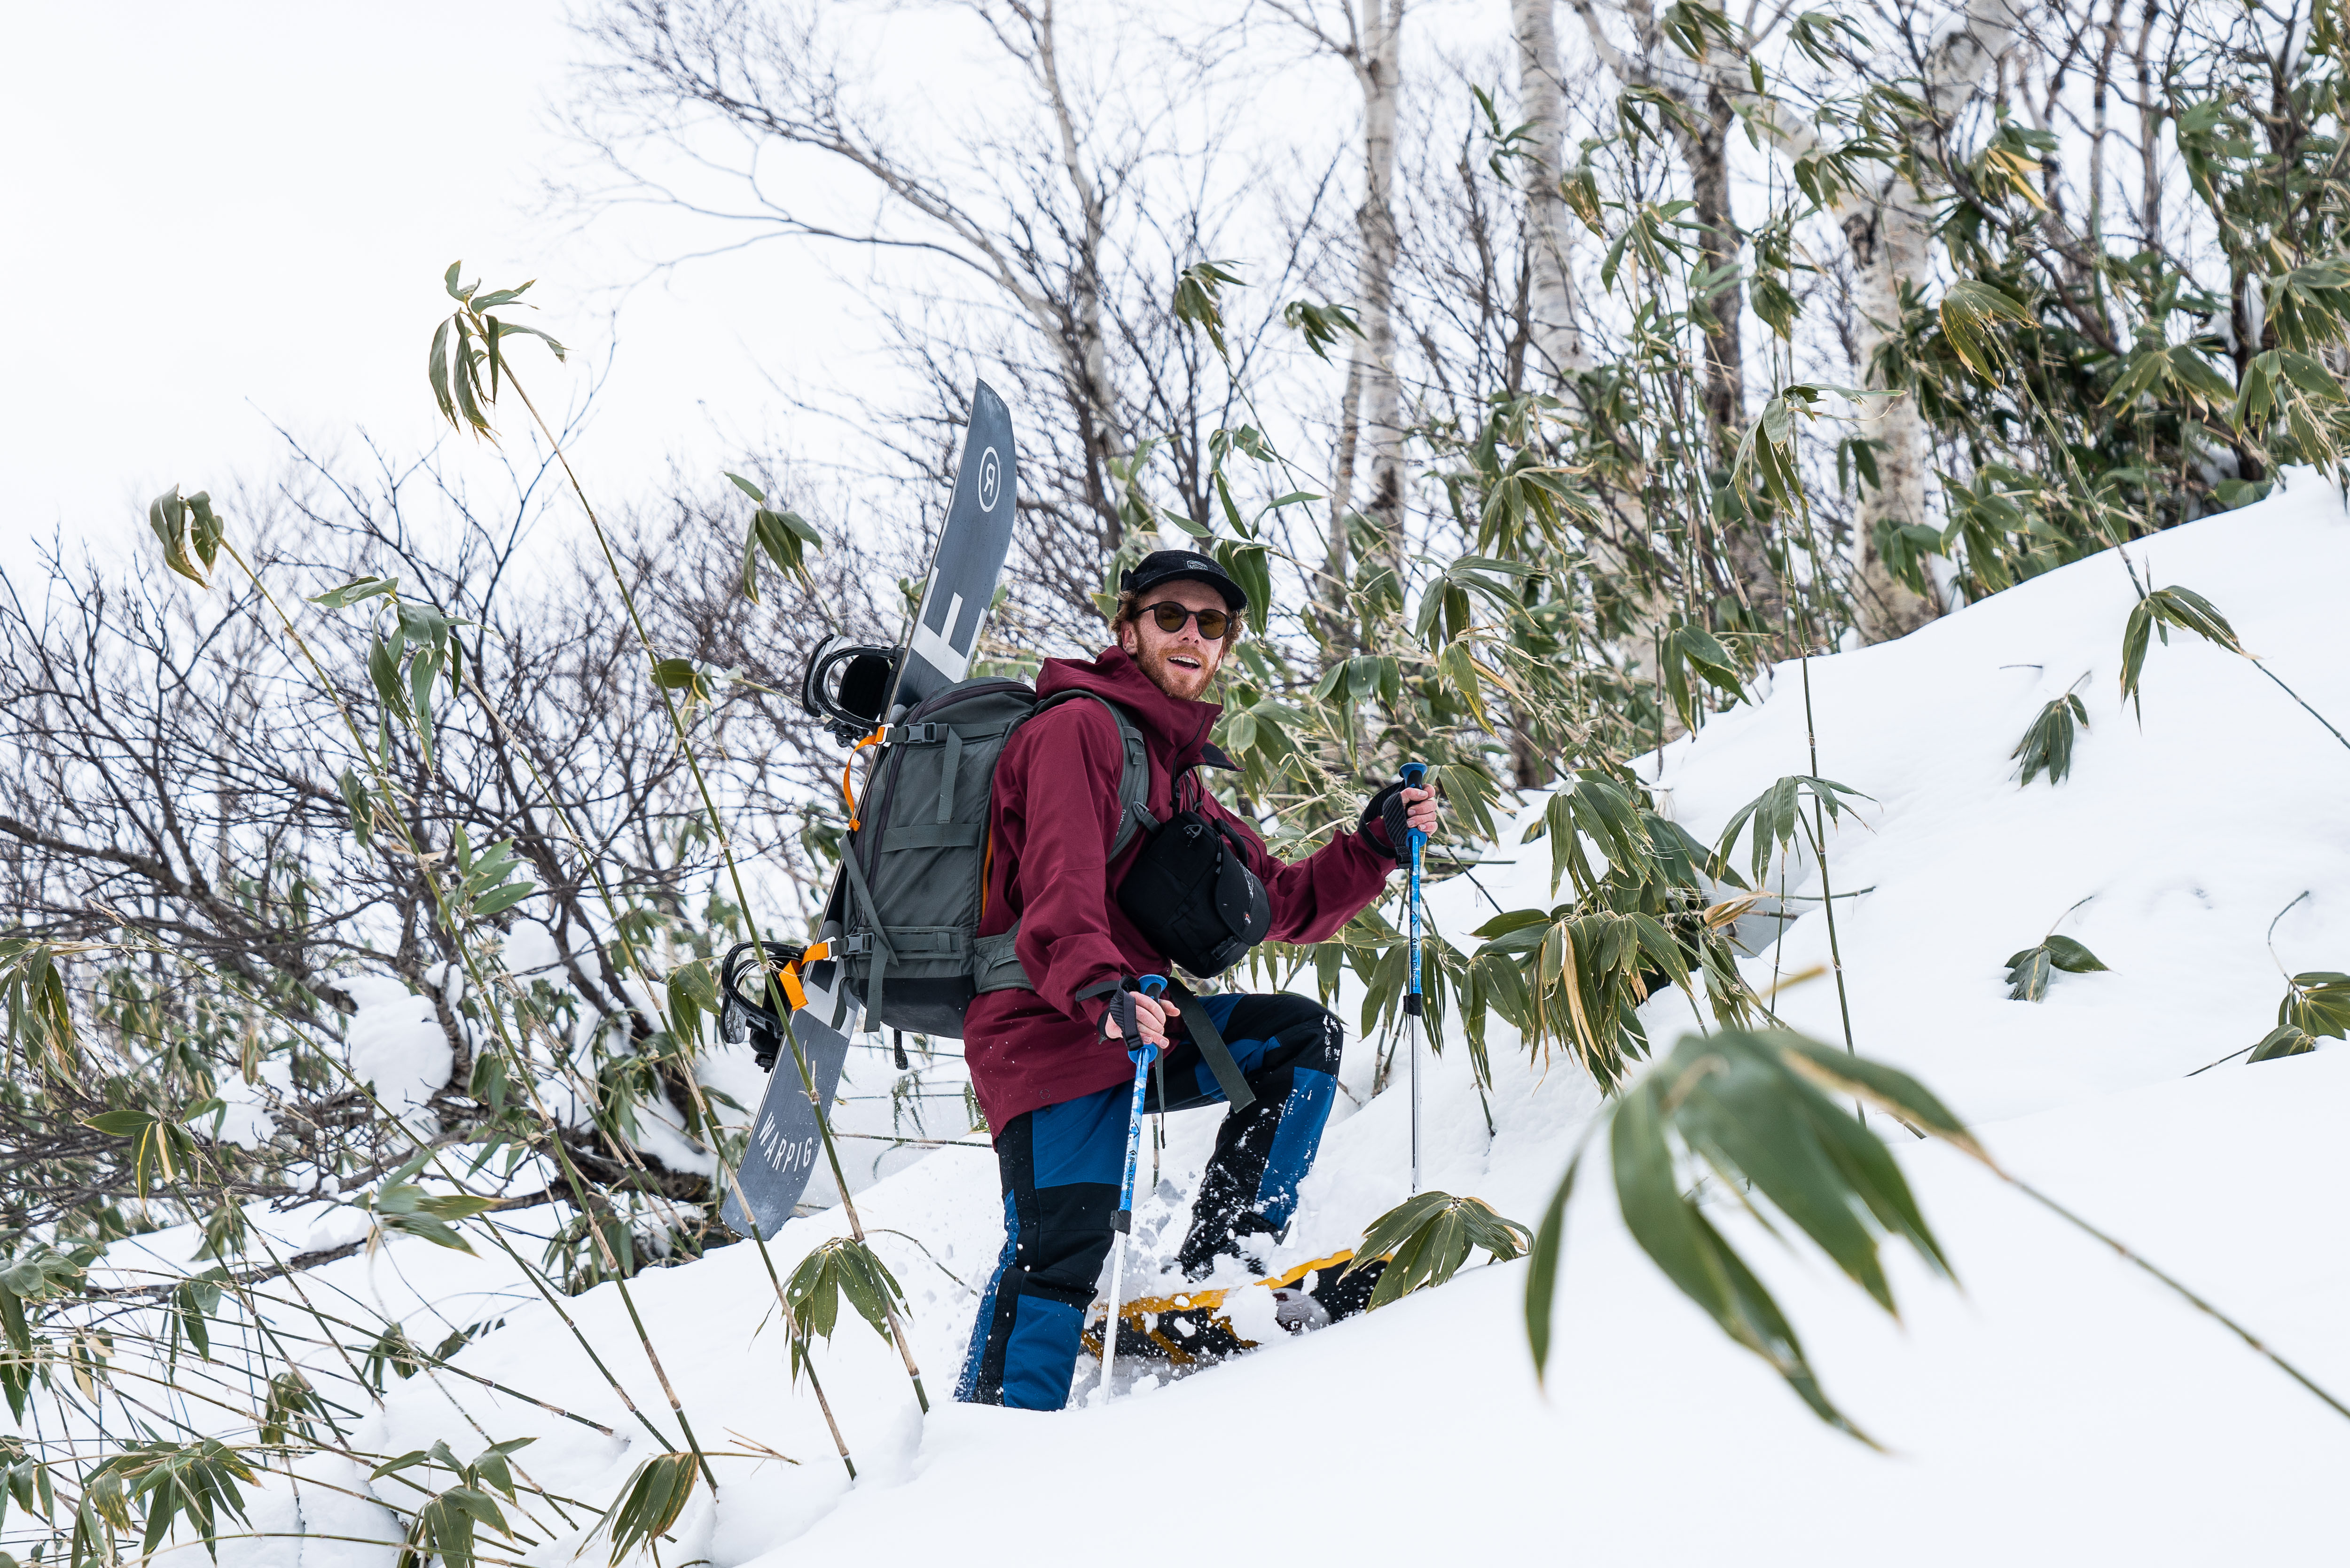 Man snowshoeing up snowy slope.